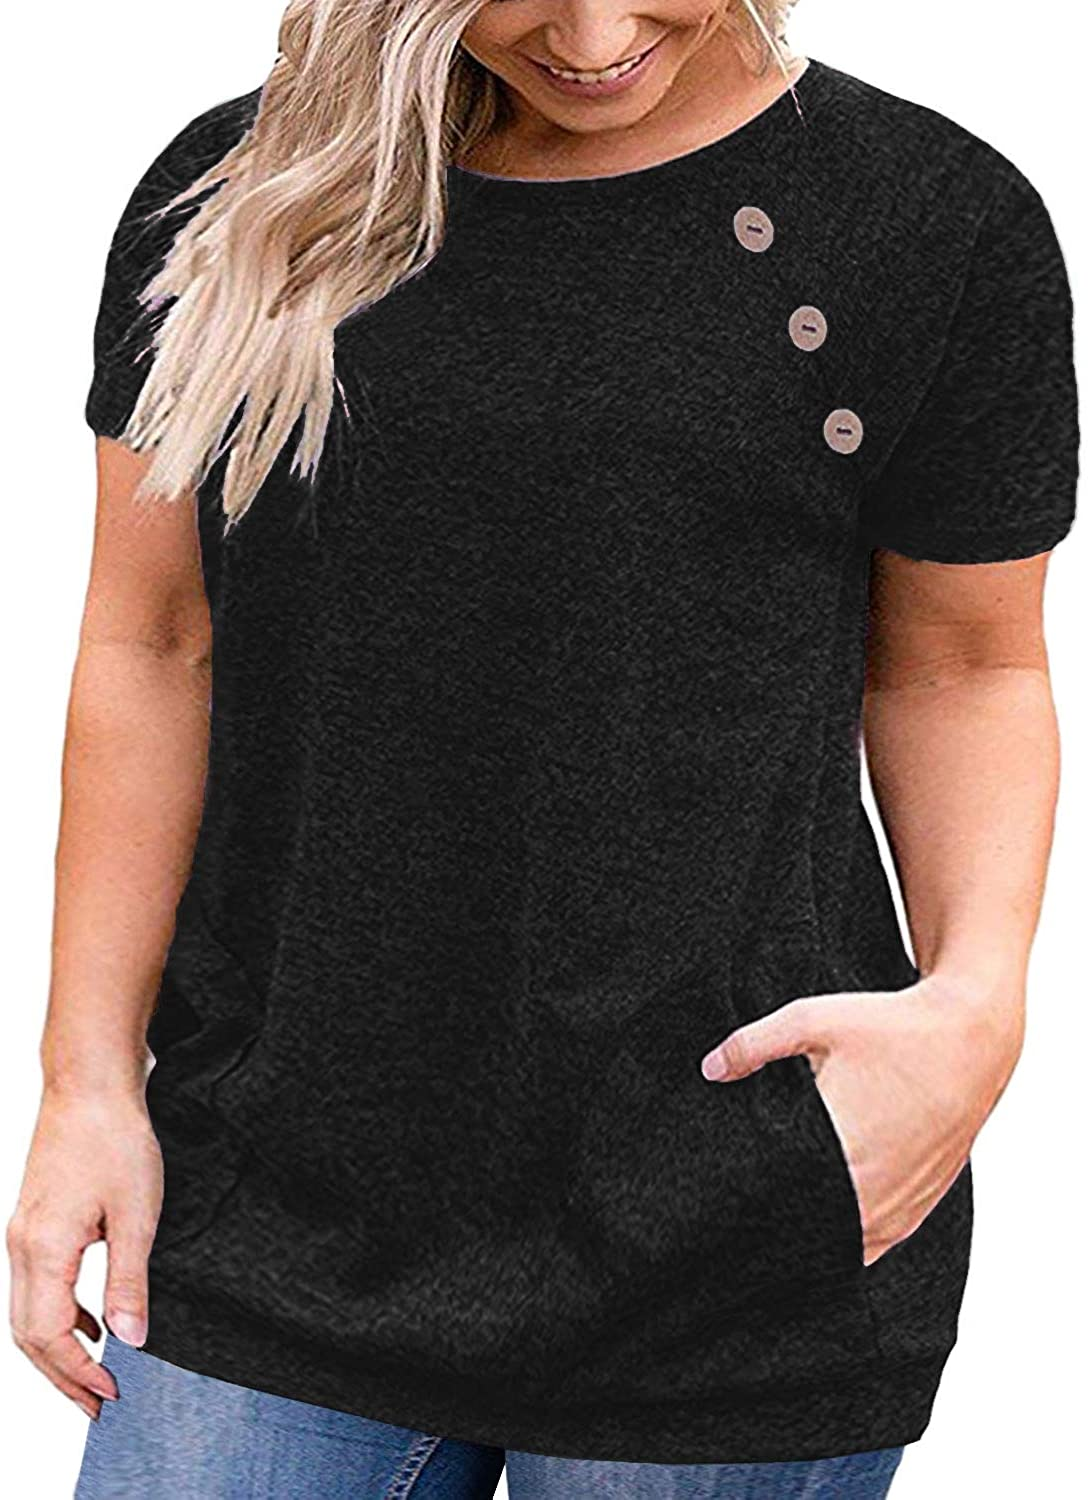 VOGRACE Womens Plus-Size Summer Tops Button Up T Shirts with Pockets